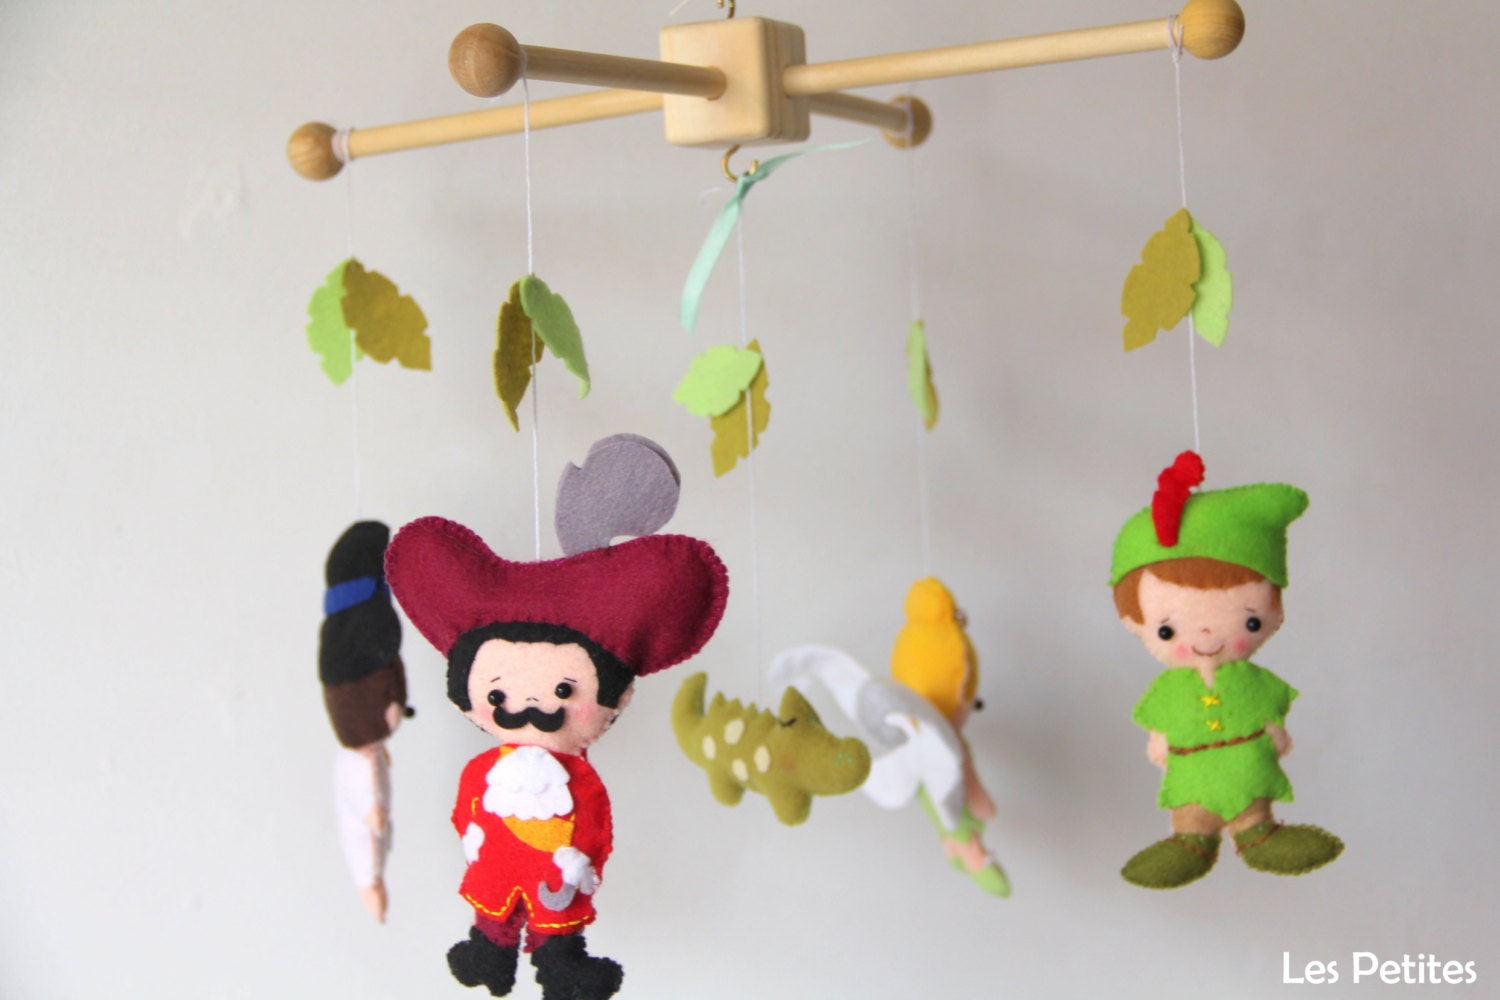 Peter Pan Costumes. Party & Occasions. Halloween. All Halloween Costumes. Peter Pan Costumes. Showing 40 of results that match your query. Search Product Result. Baby Peter Pan Costume. Product - Peter Pan Disney Child Halloween Costume. Product Image. Price $ Product Title.